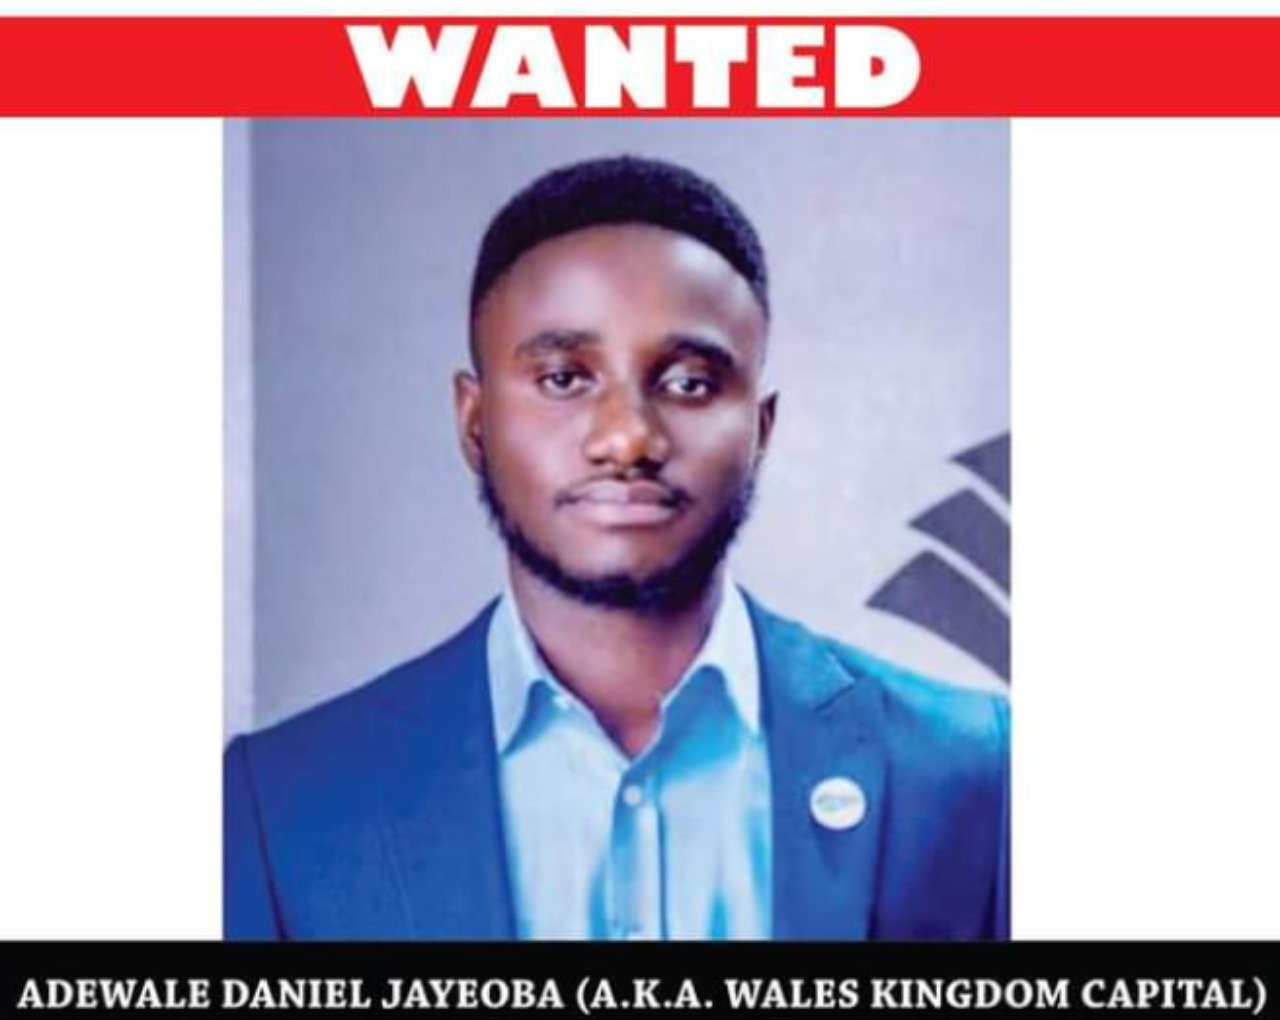 Wales Kingdom Capital: EFCC declares 24-year-old man wanted for N935m investment scam